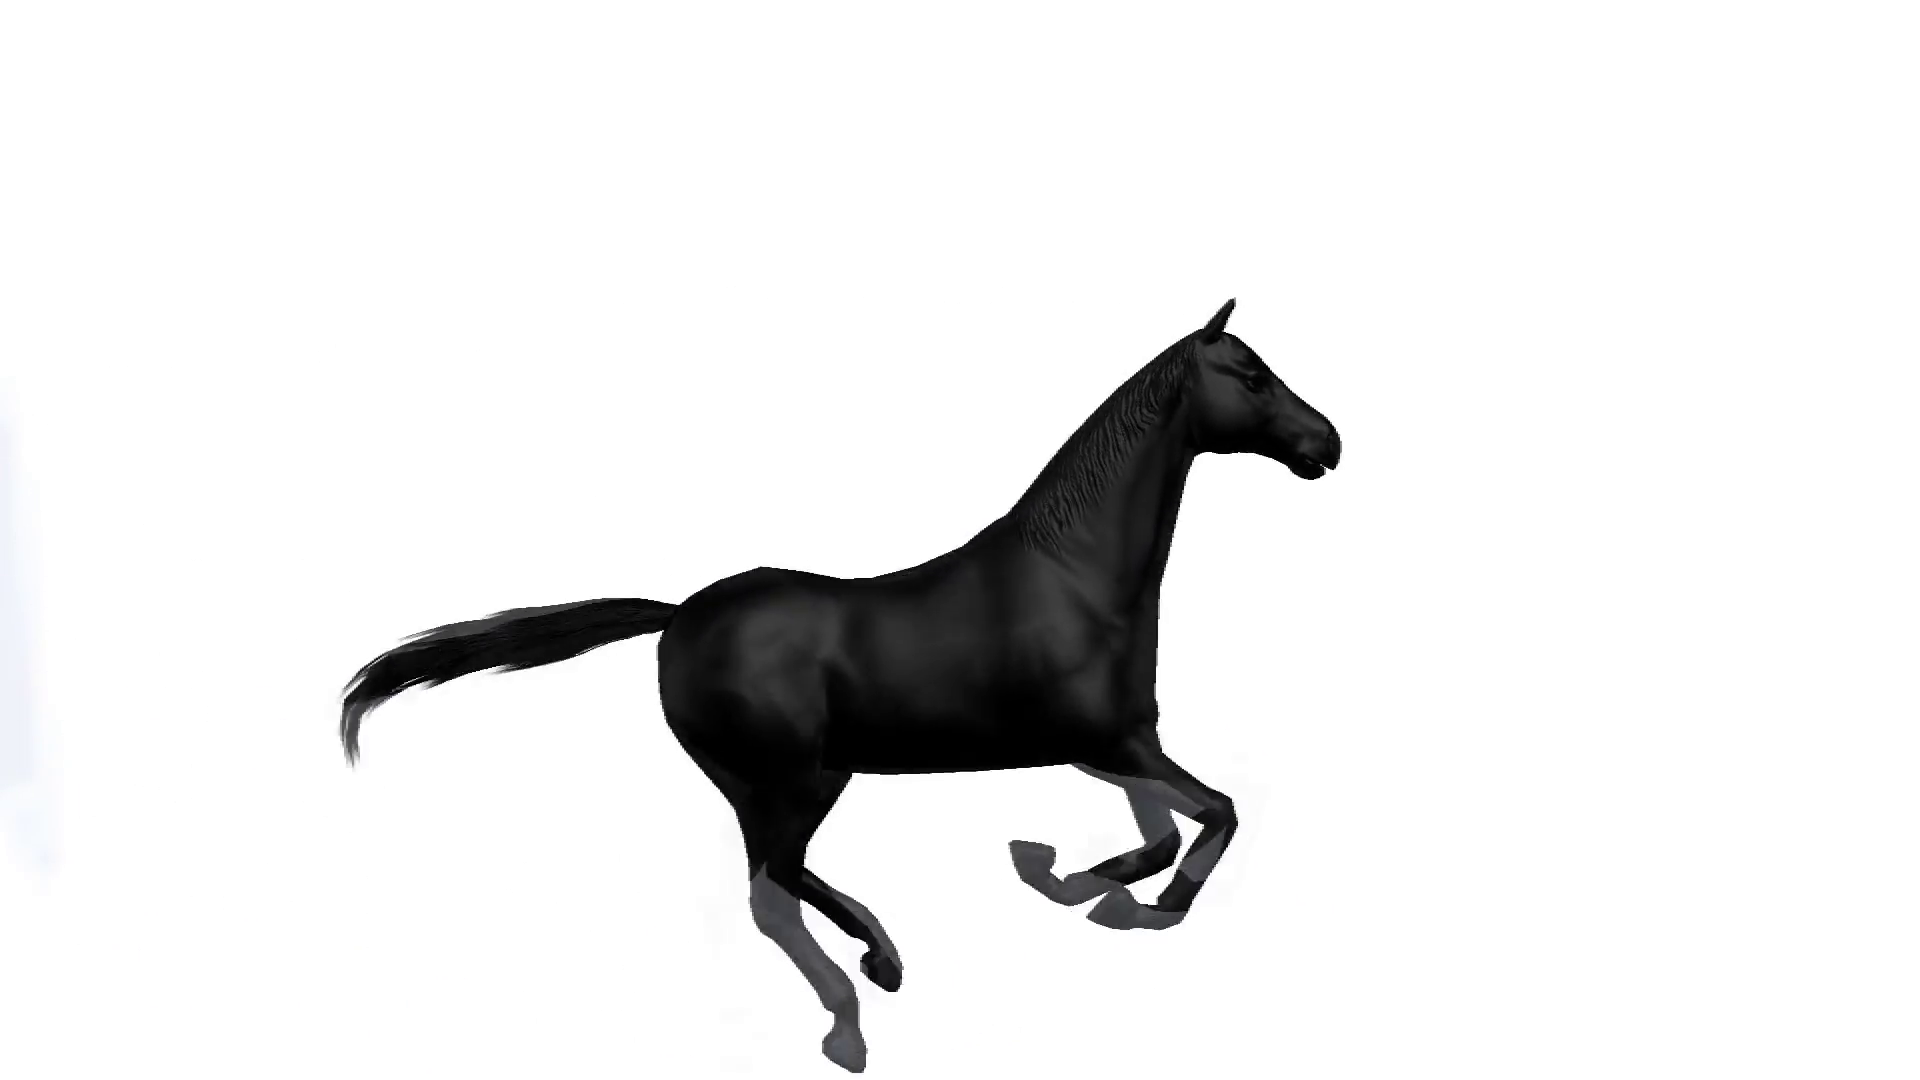 1920x1080 black horse galloping across a white background motion background